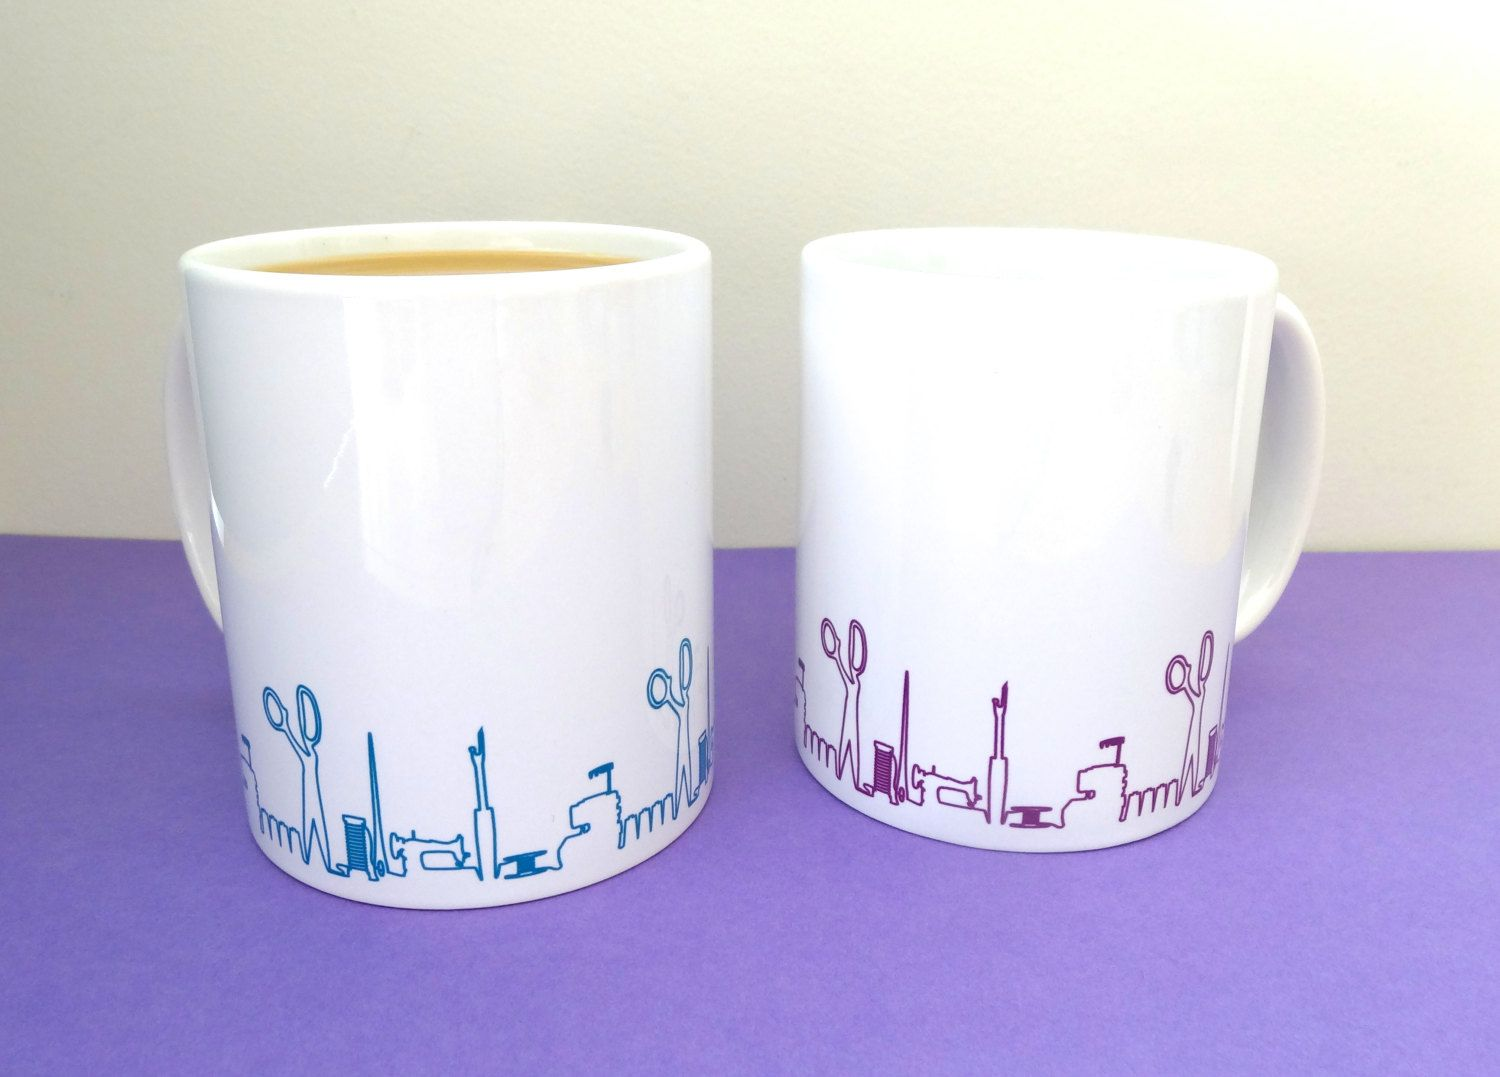 Sewing Skyline coffee mug Valentines day gift gift for seamstress unique crafty gift unusual gift August 13 2015 at 12:48AM